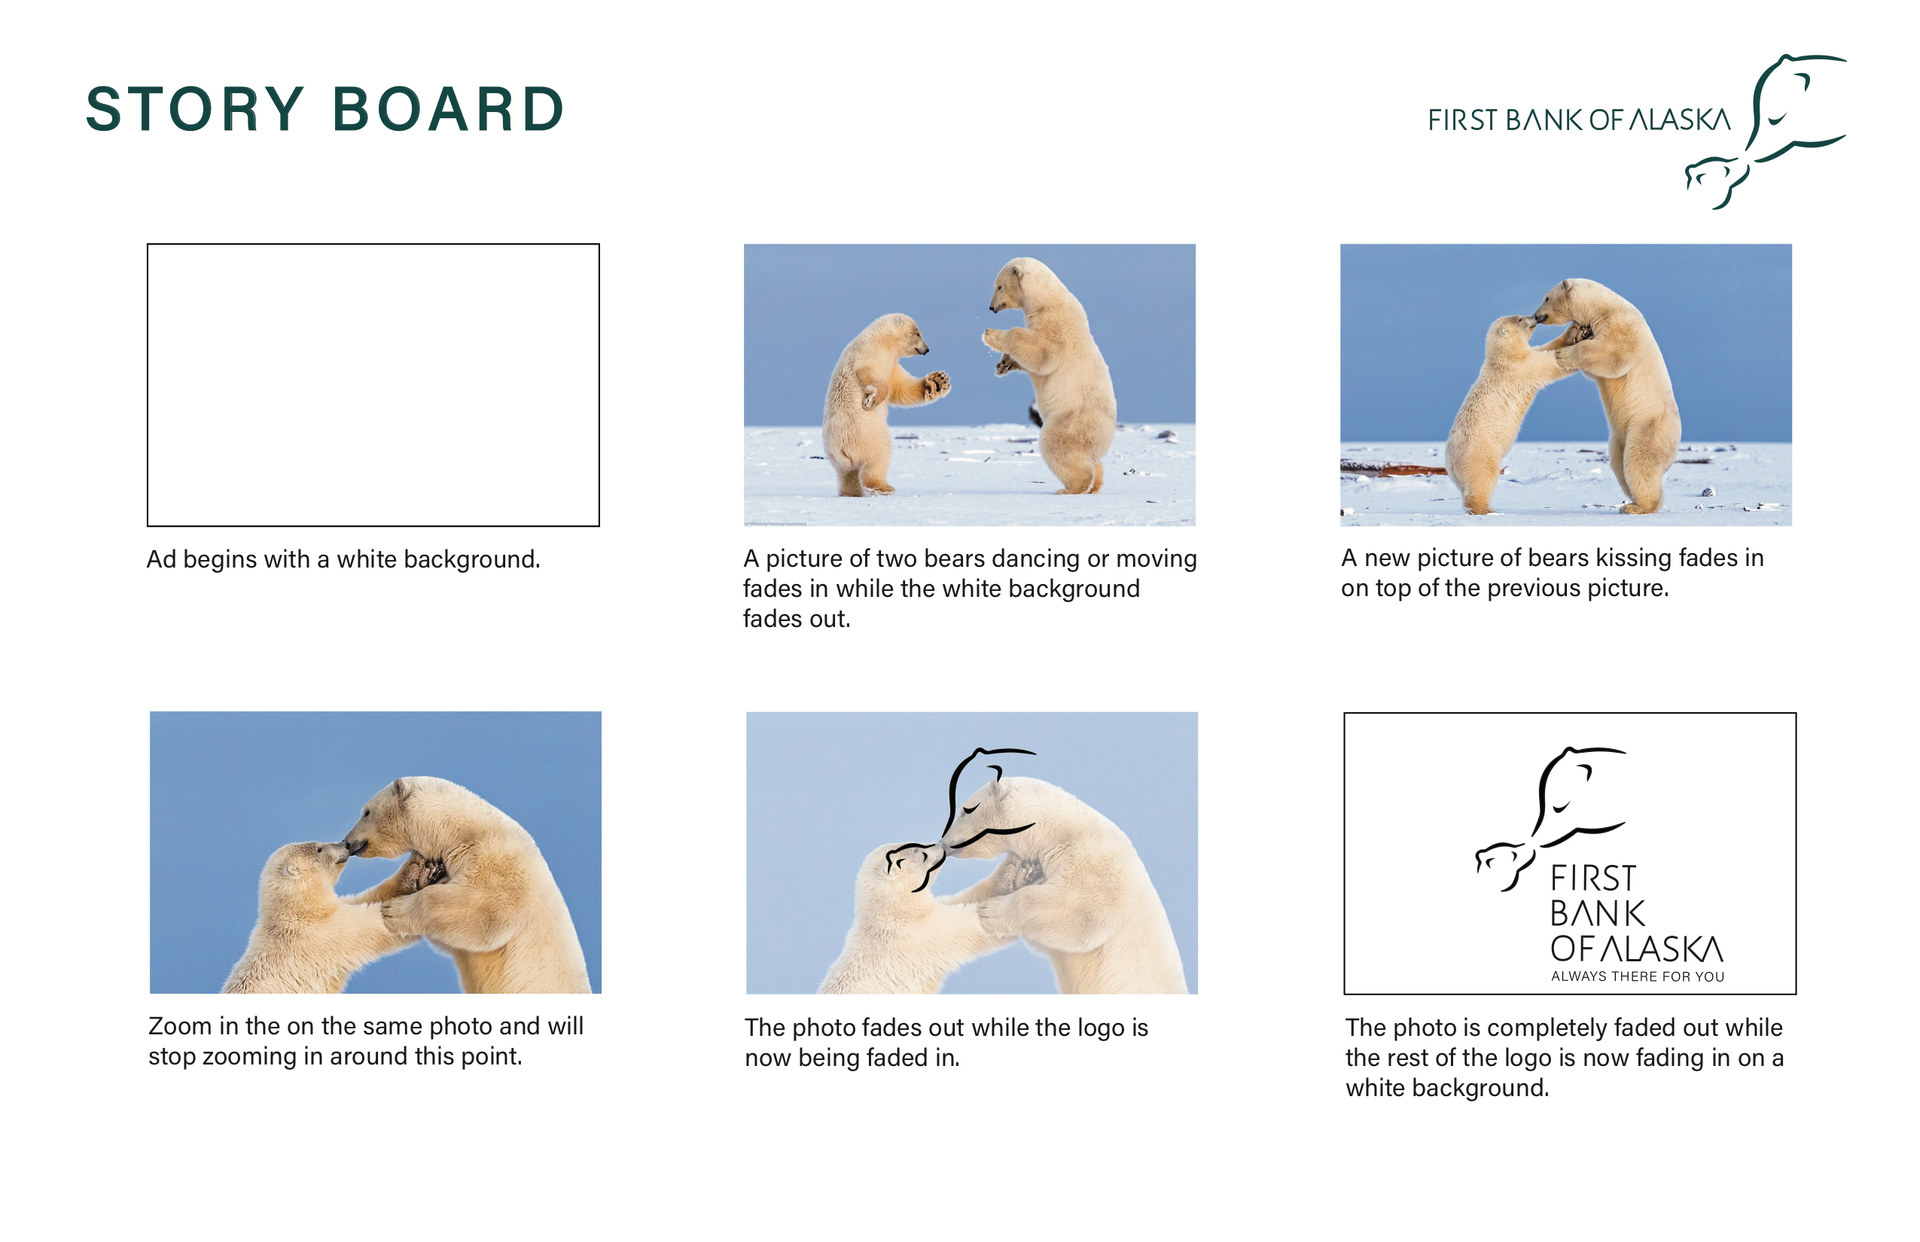 First Bank of Alaska Story Board